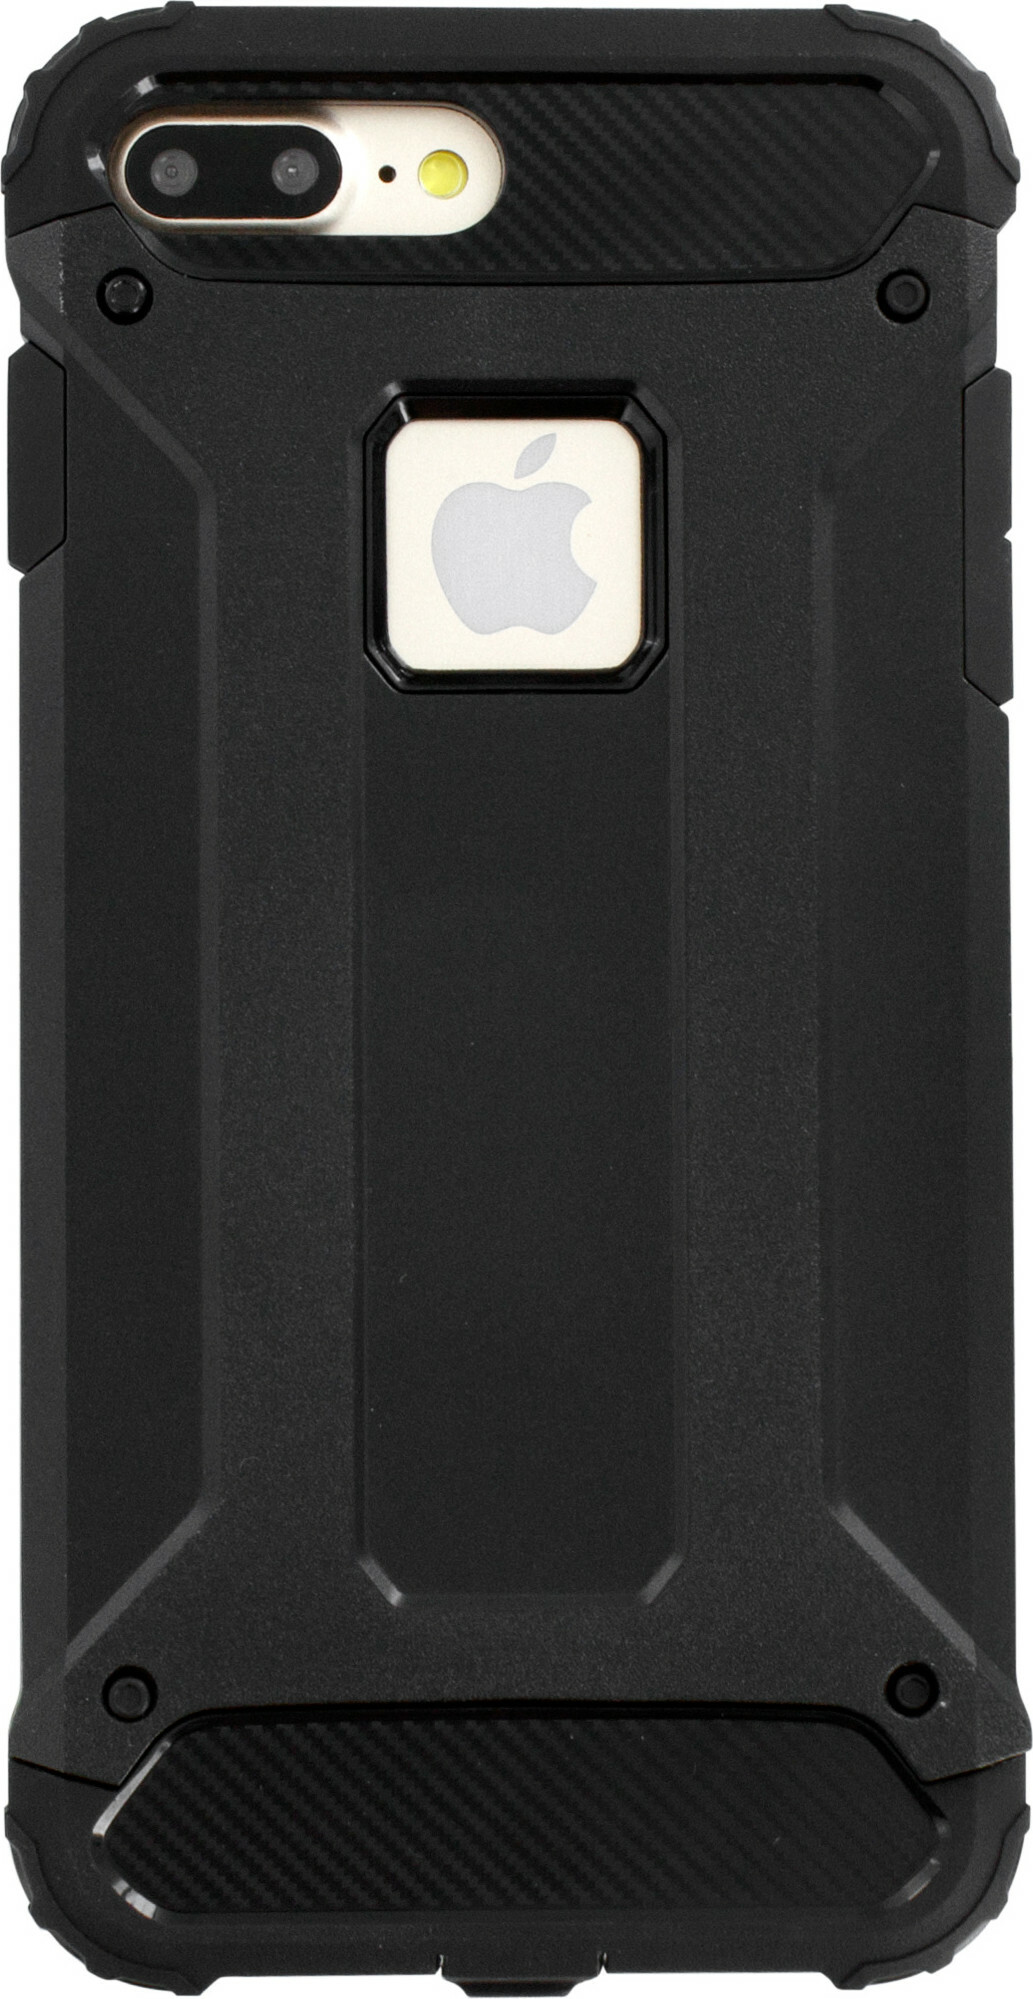 Mobiparts Rugged Shield Case Apple iPhone 7 Plus Black